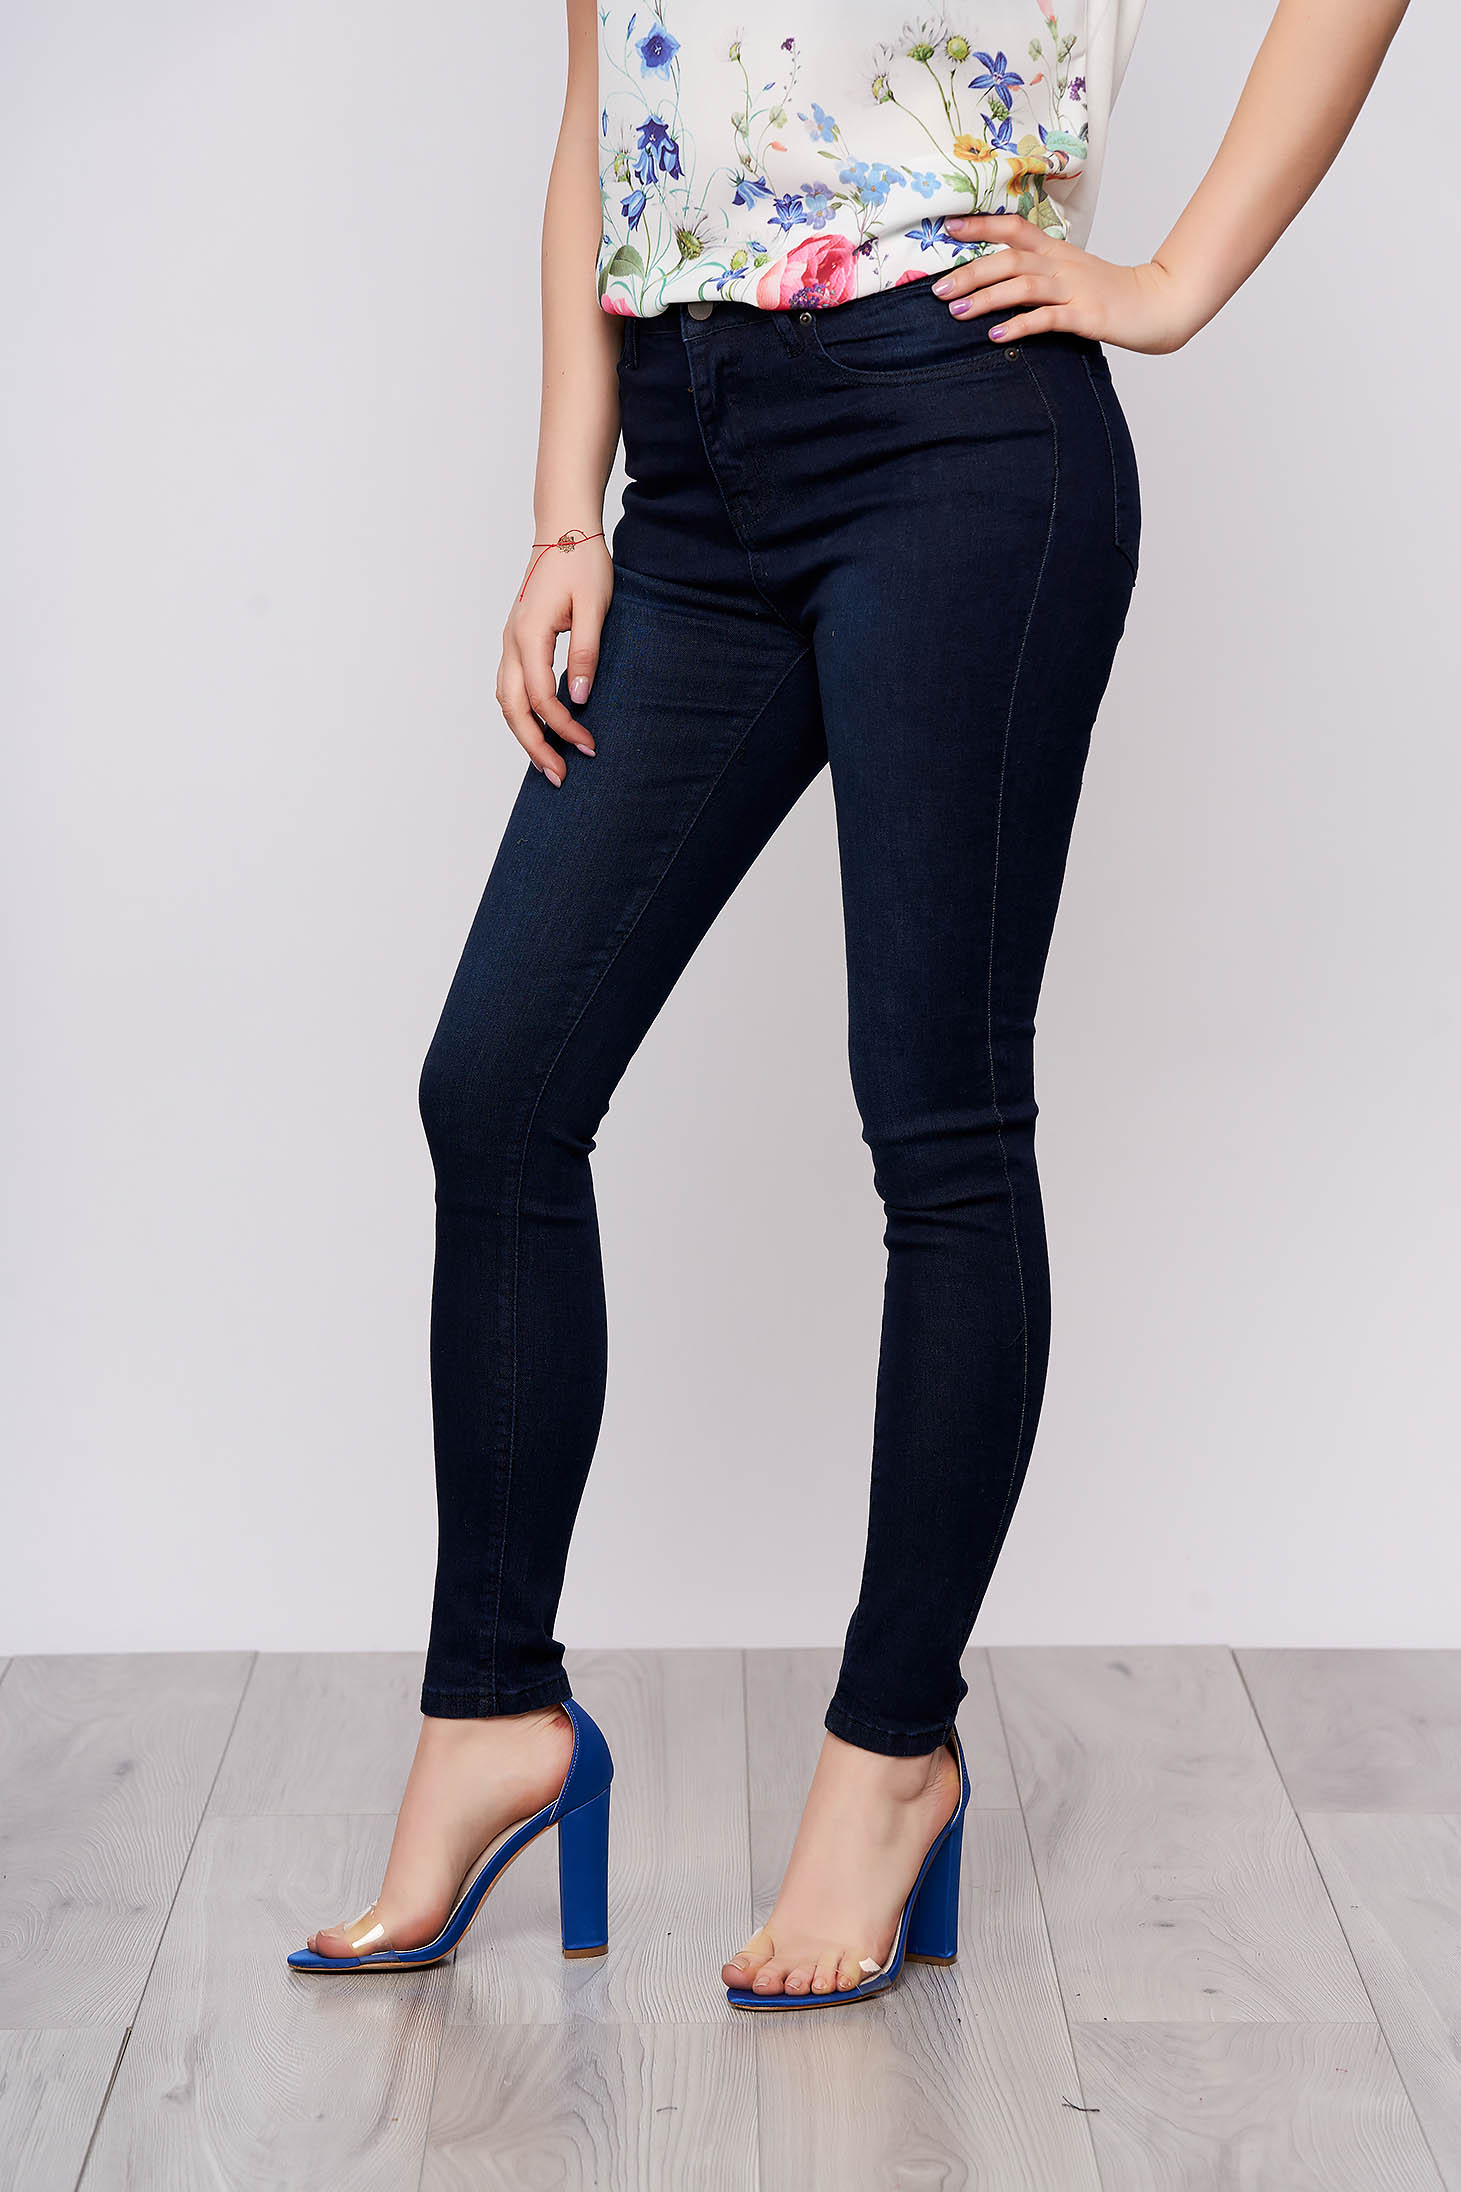 Blue basic denim trousers with pockets conical cut